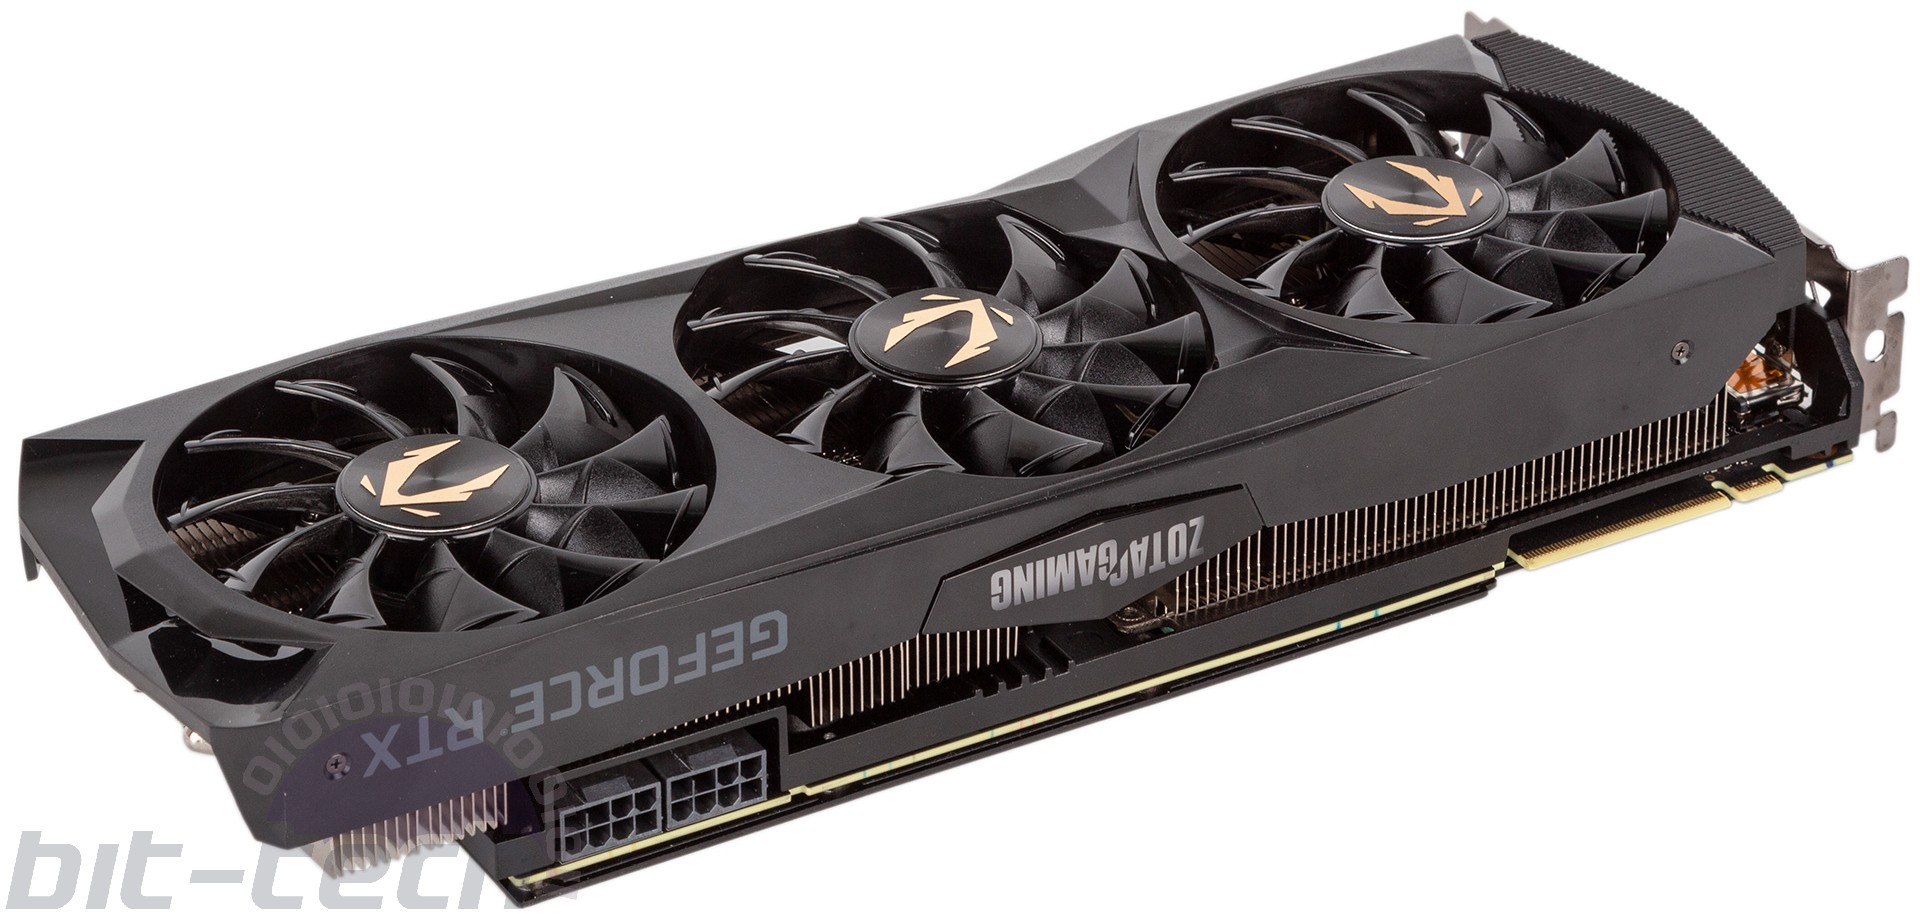 Zotac Gaming Geforce Rtx 2080 Ti Amp Review Bit Tech Net